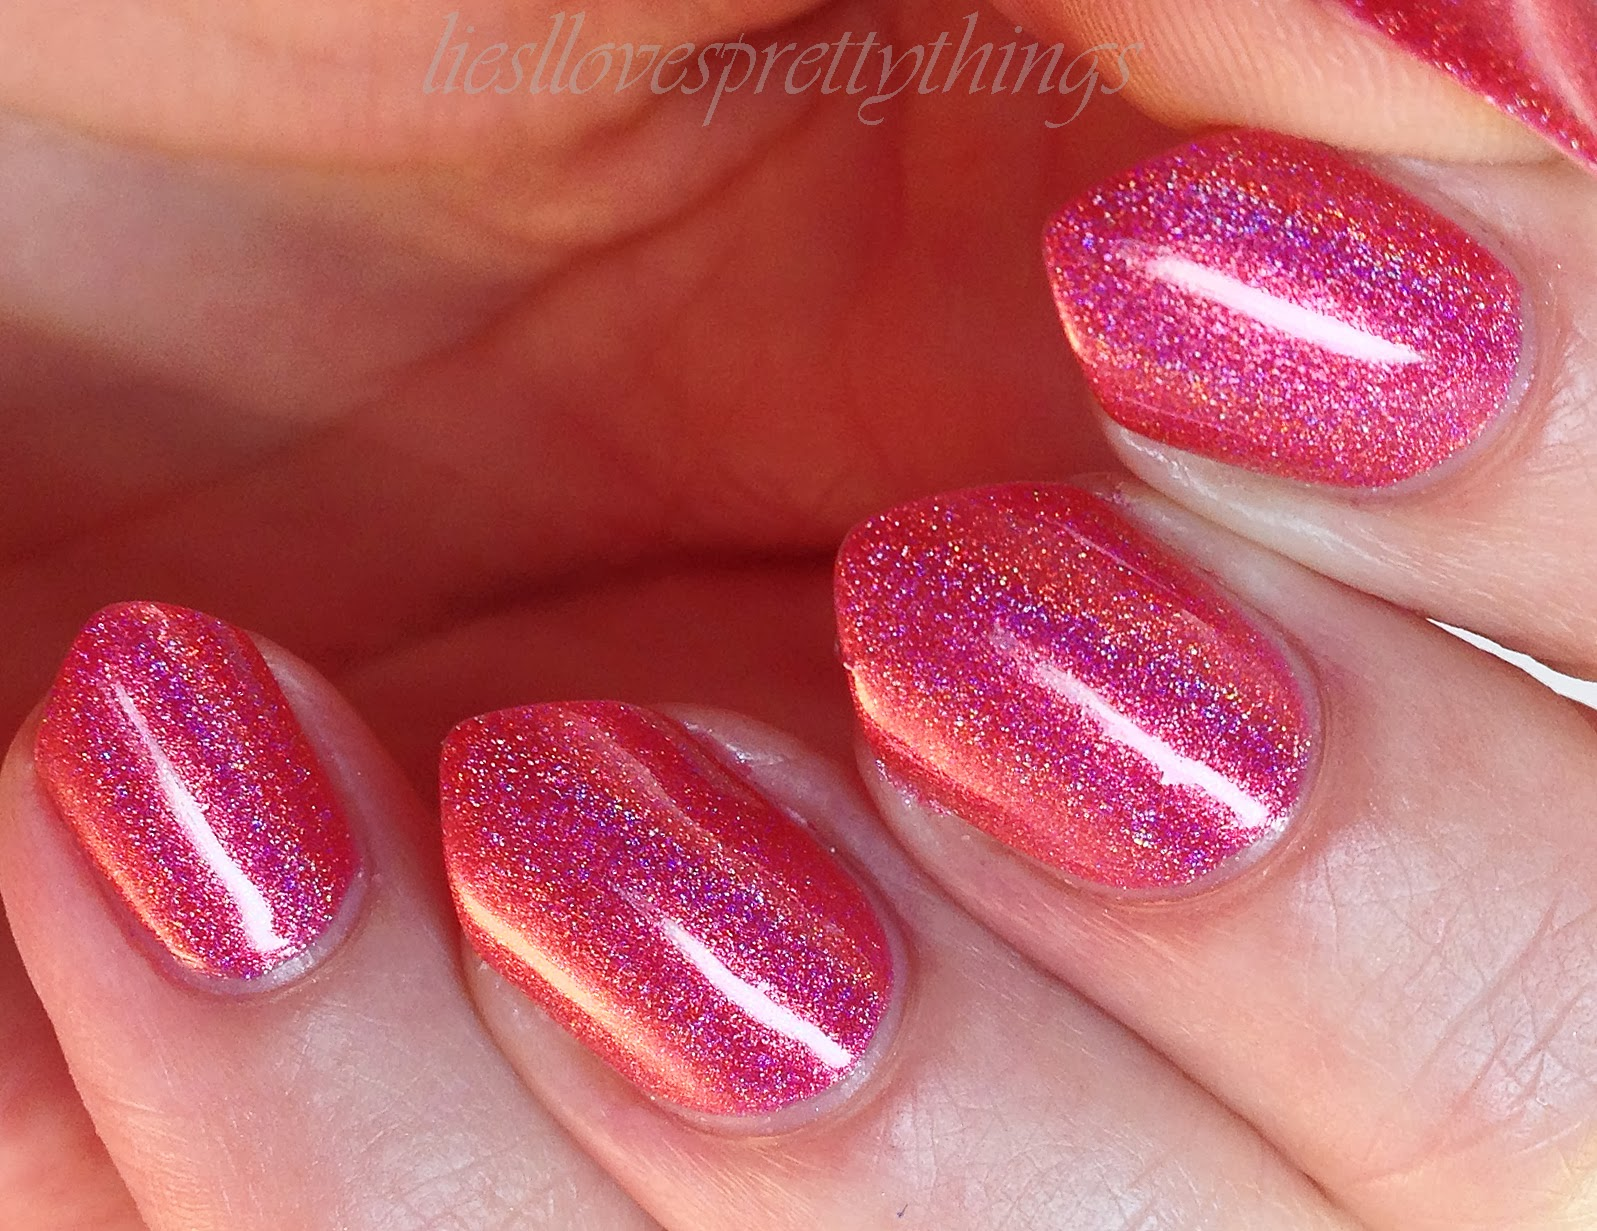 Joss Sudden Impulse swatch and review